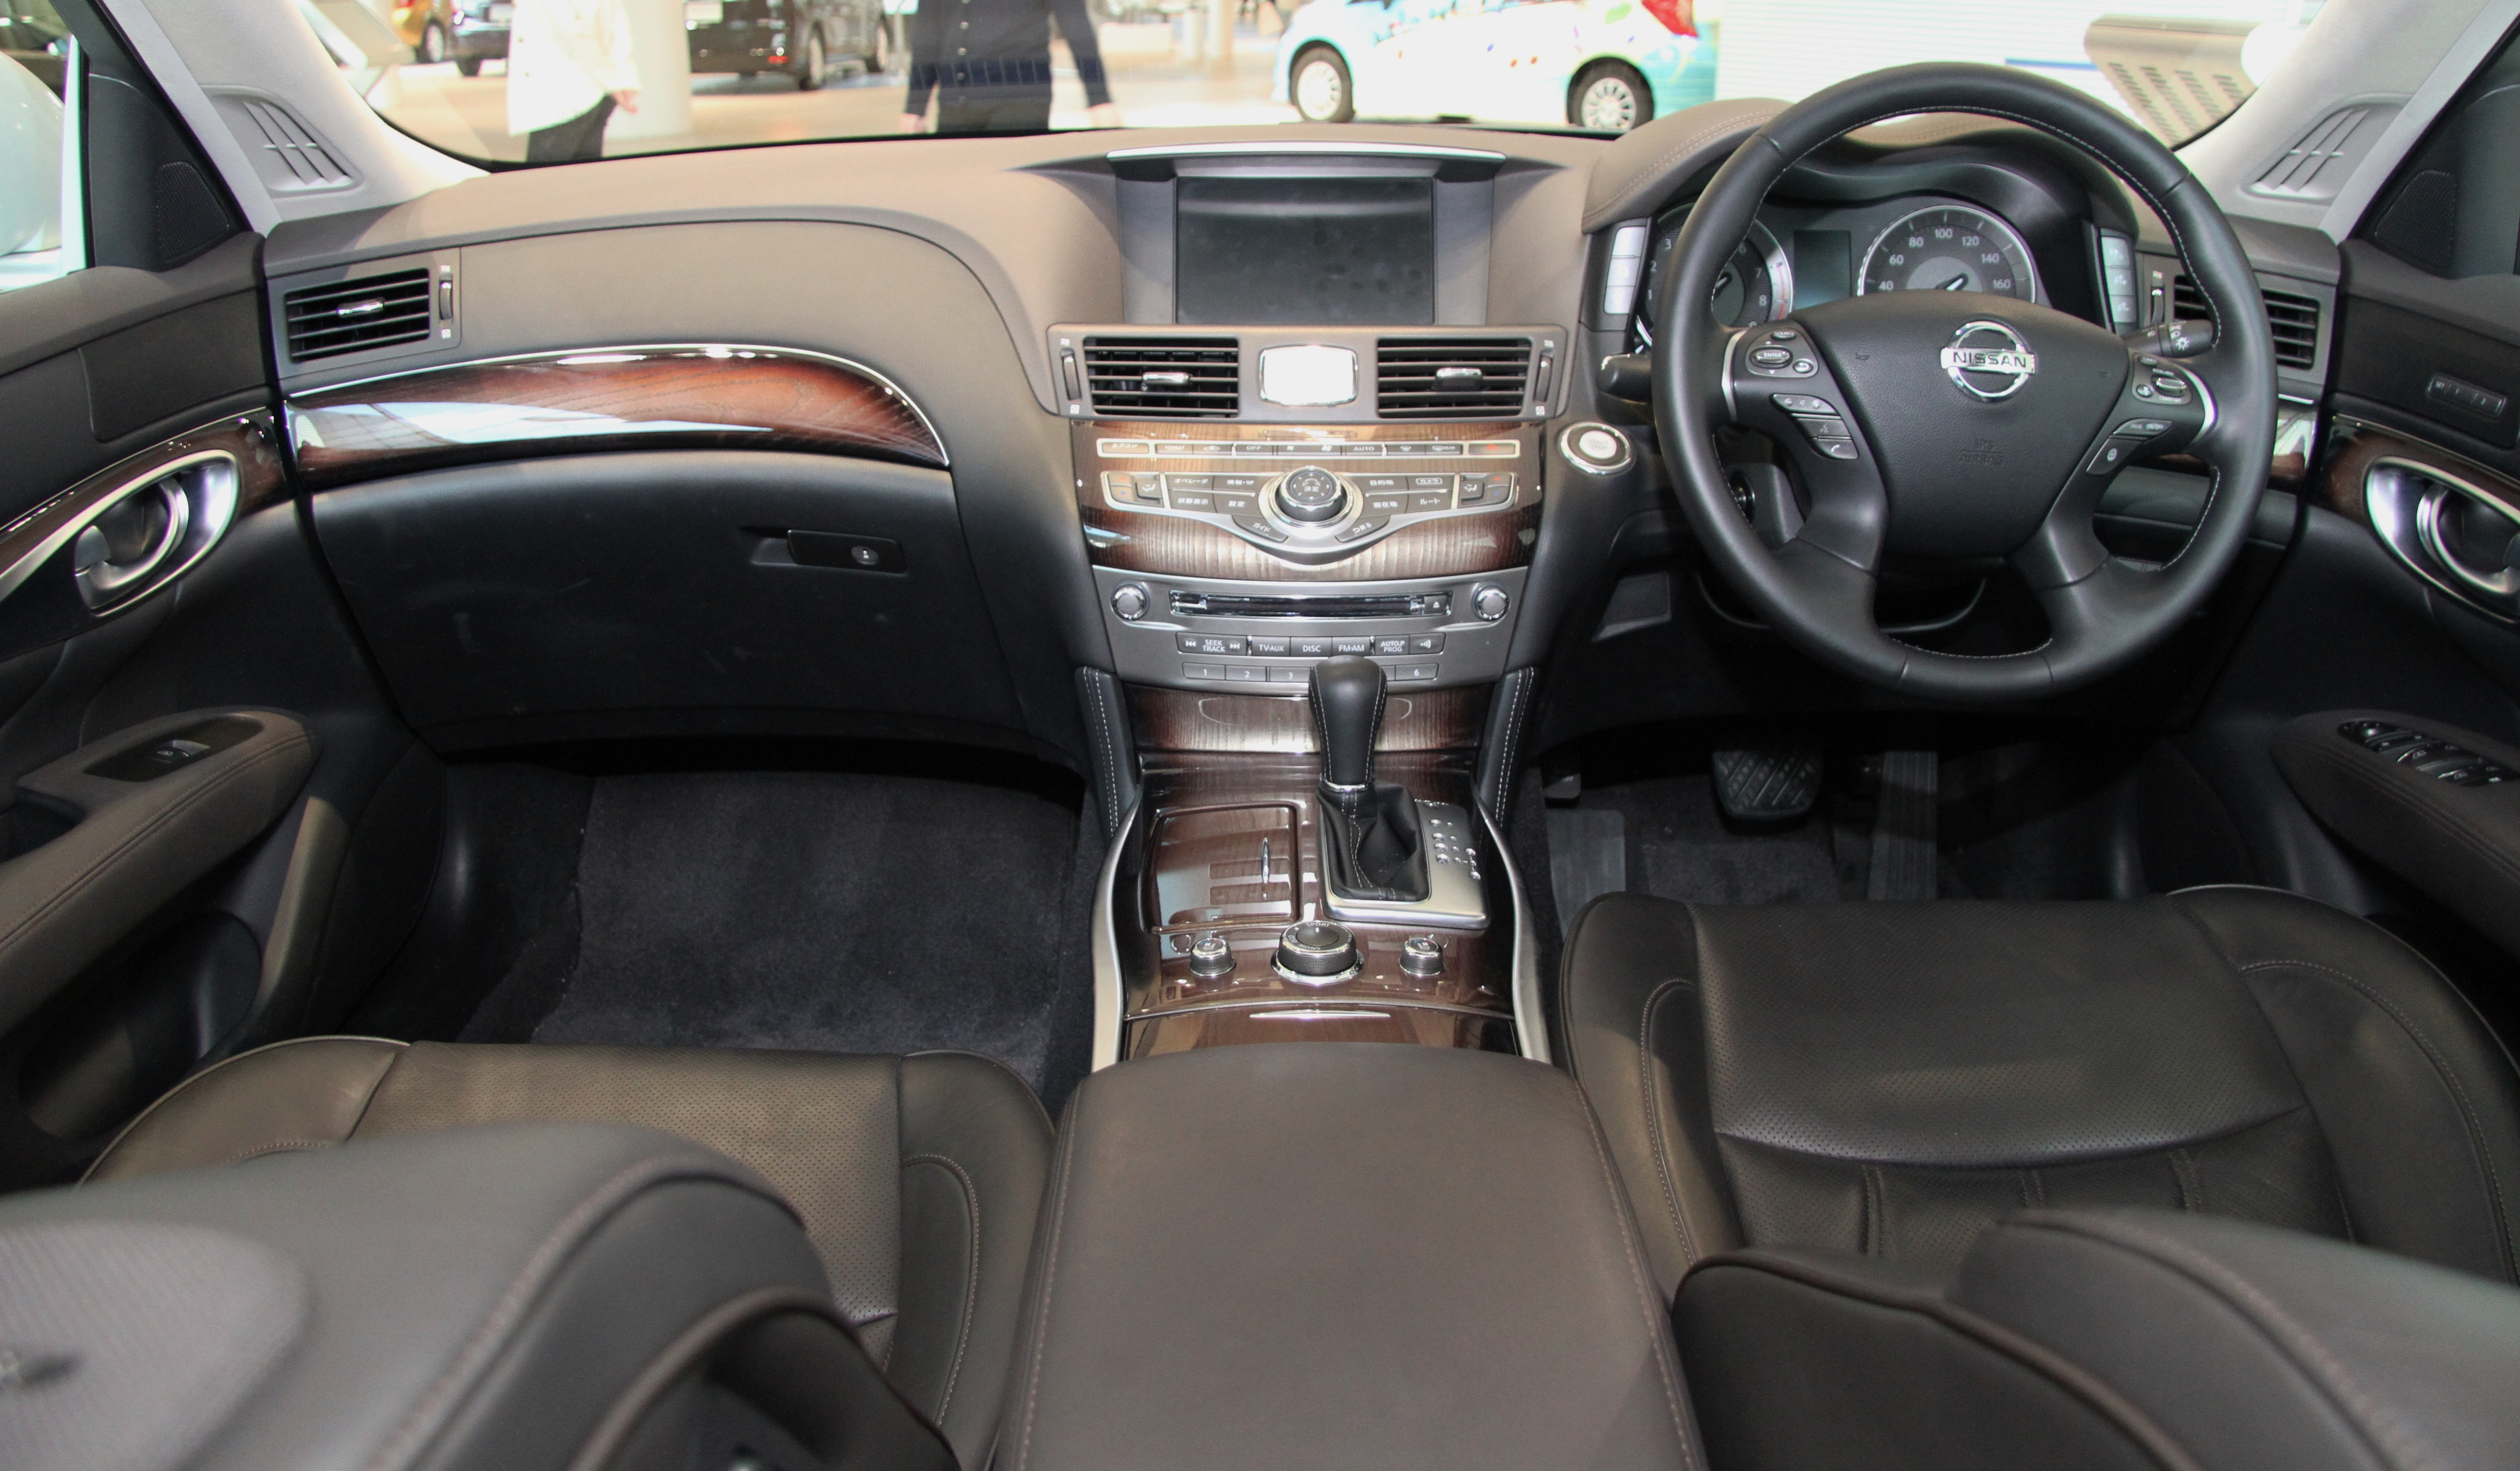 Watch in addition Watch as well File NISSAN FUGA Y51 interior as well Watch besides Watch. on 2004 nissan maxima navigation